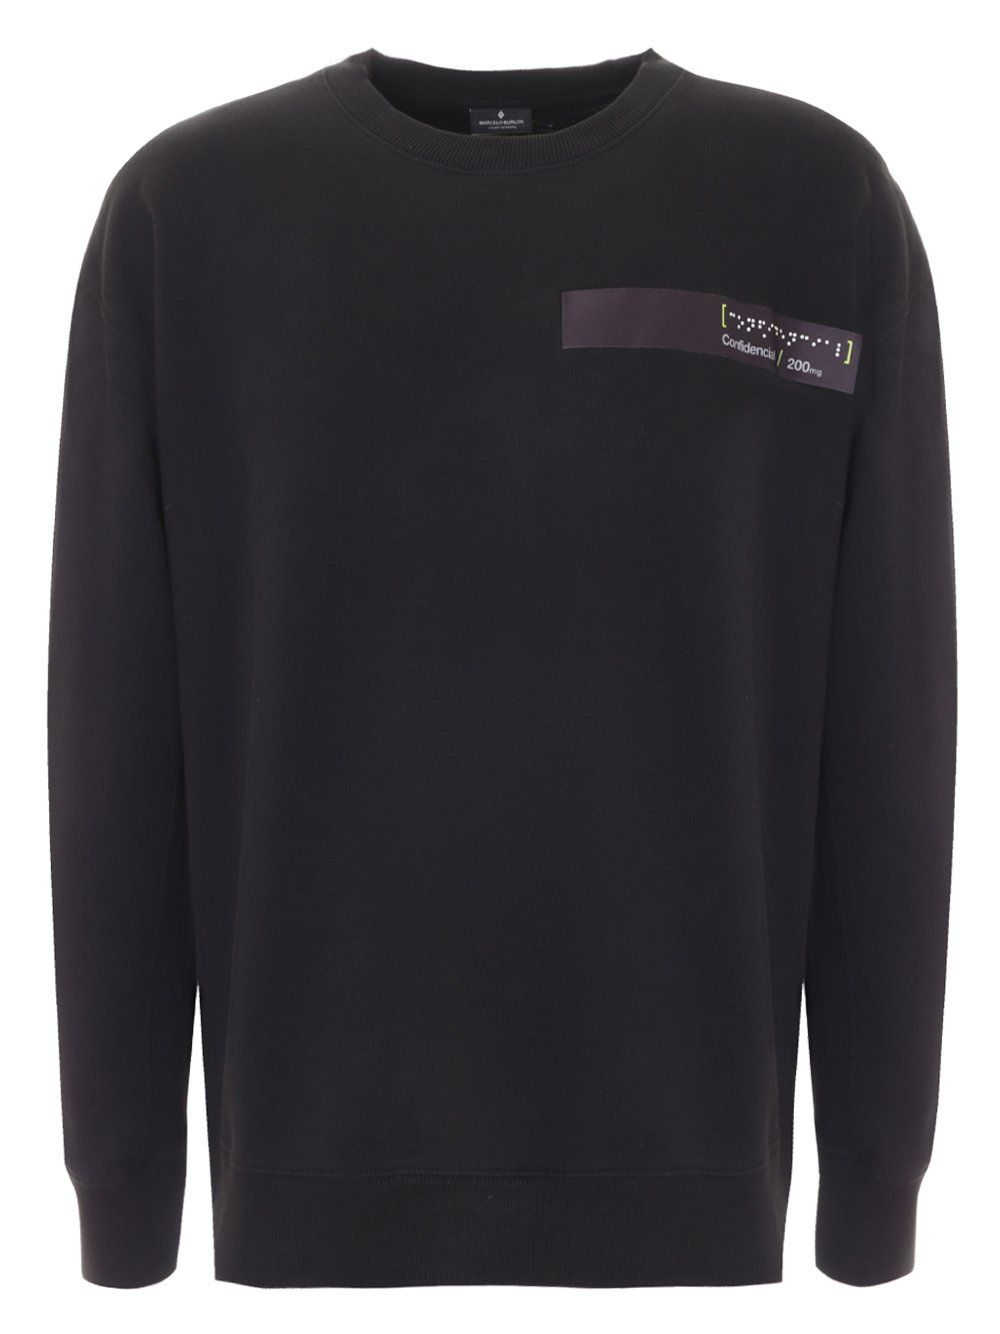 Marcelo Burlon Braille Tape Pocket Sweatshirt - Maison De Fashion